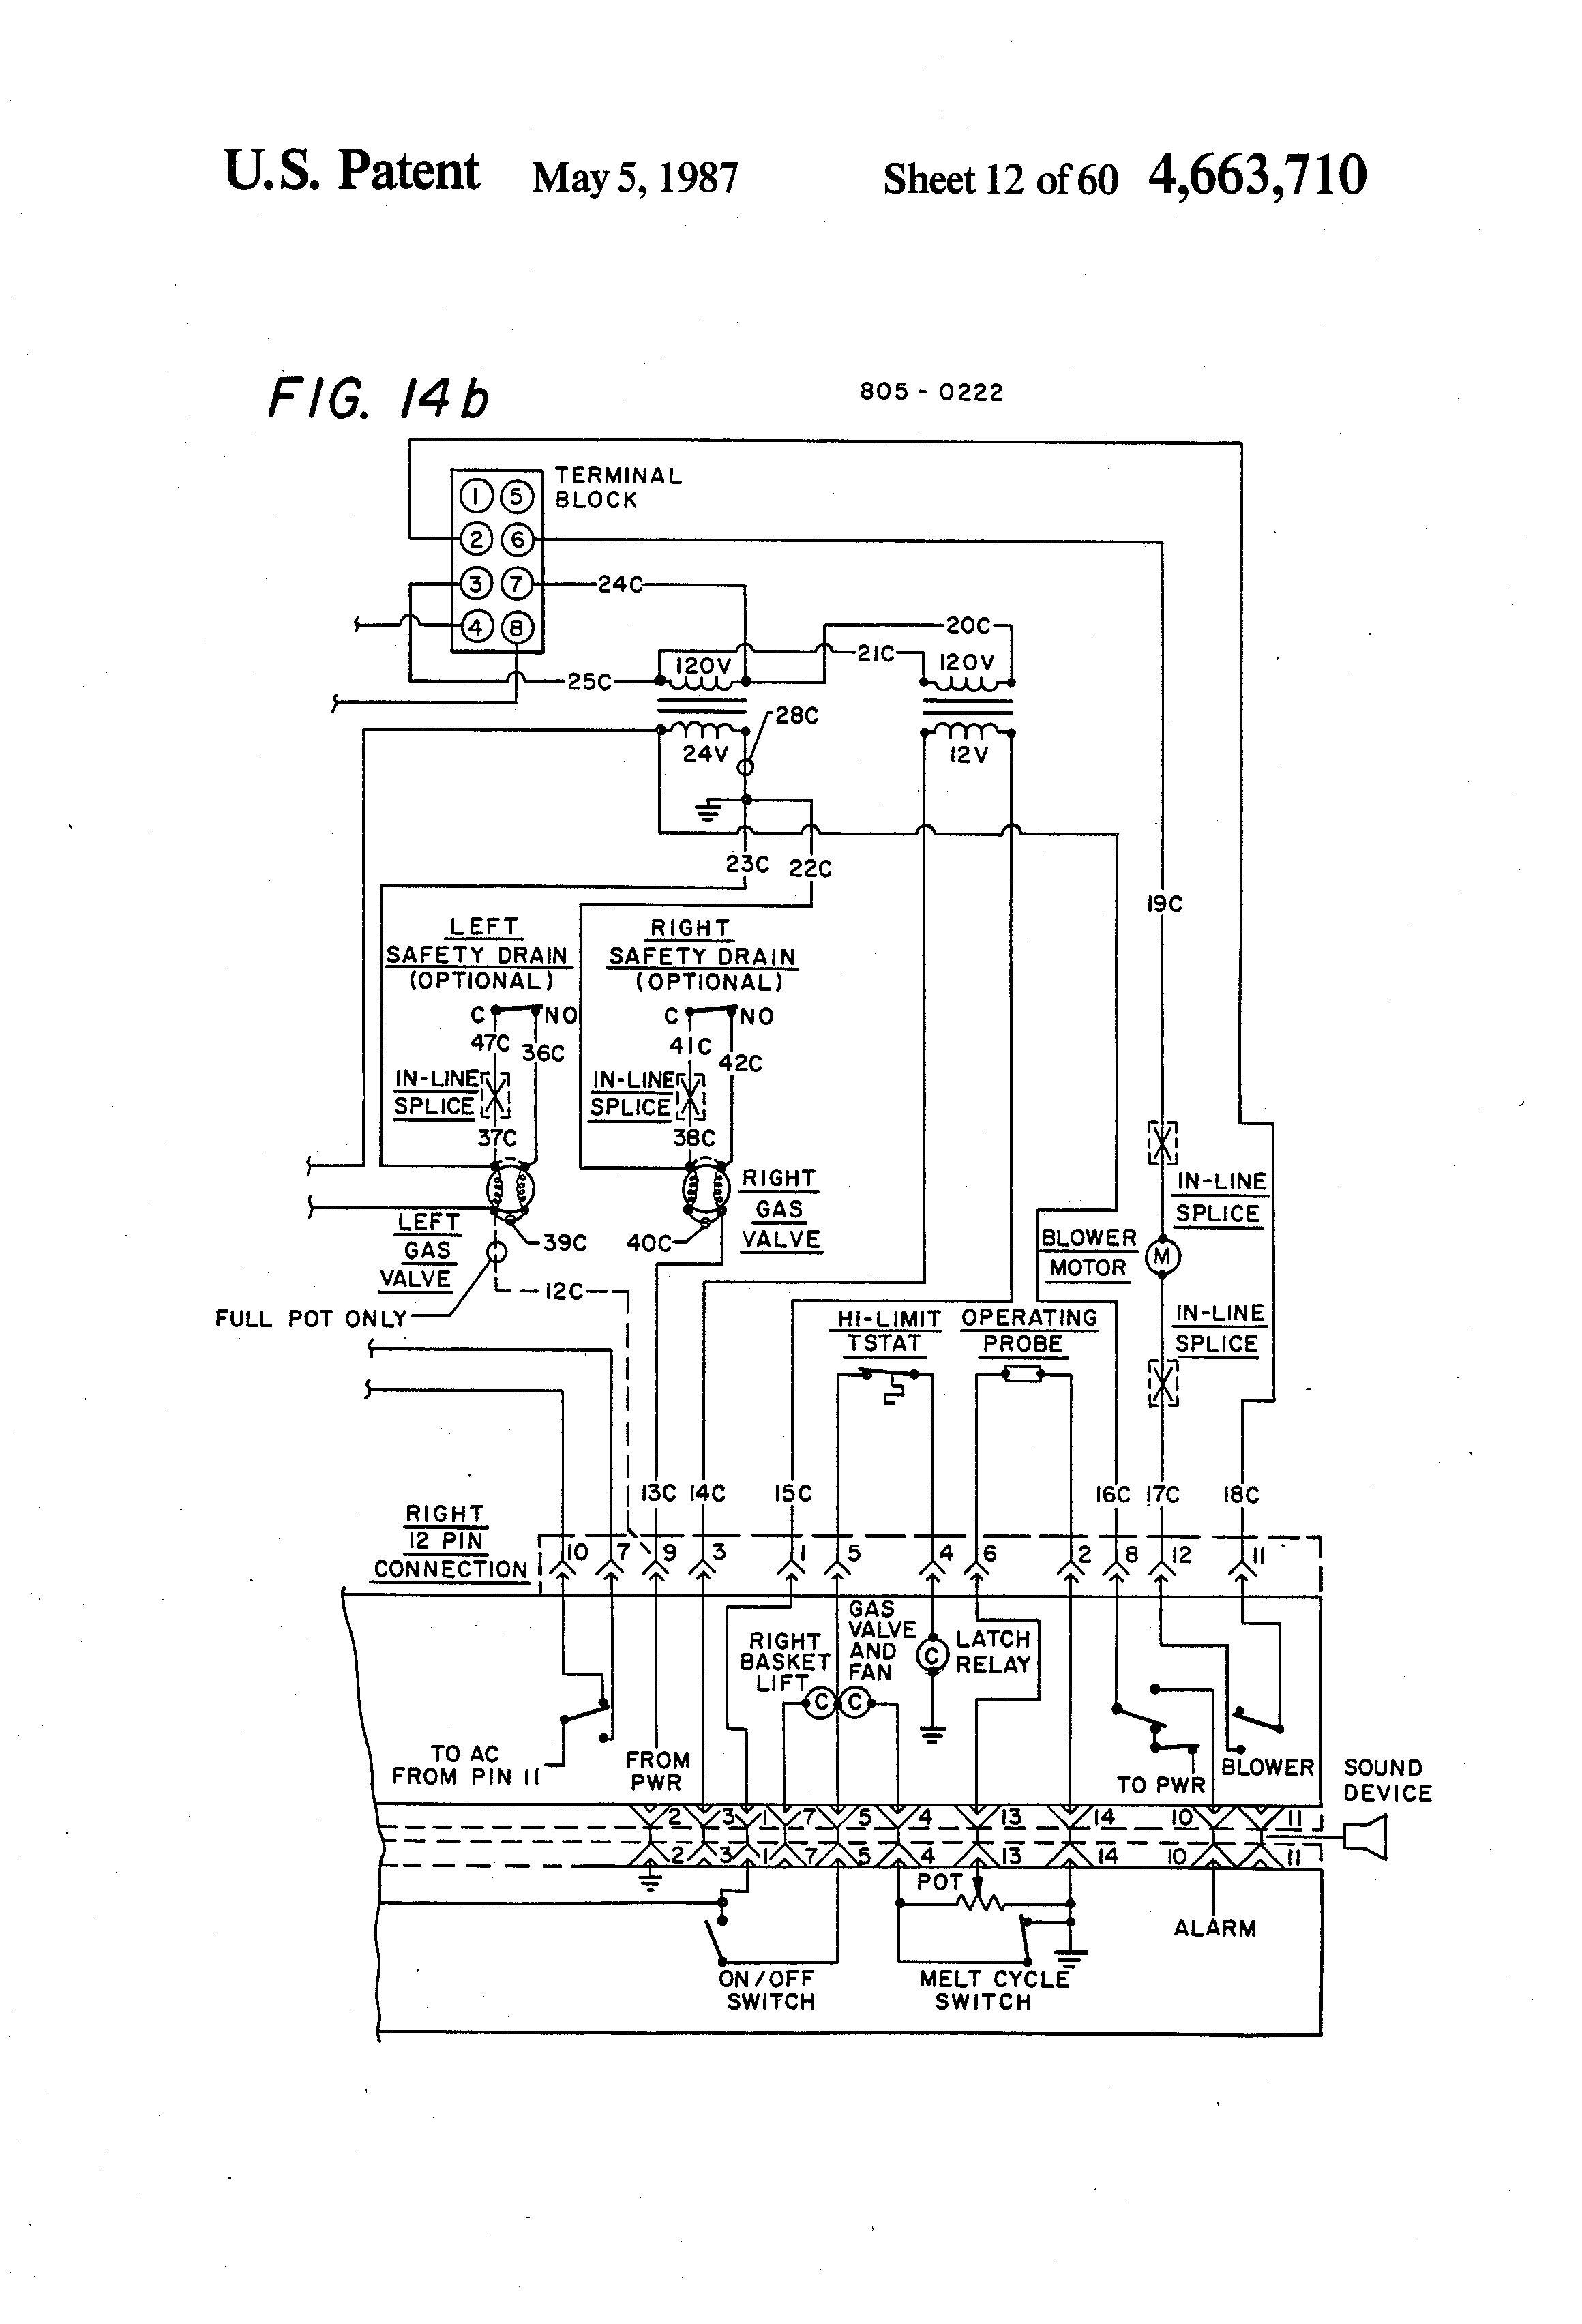 imperial deep fryer wiring diagram Download-Imperial Deep Fryer Wiring Diagram Unique Frymaster Fryer Troubleshooting Gallery Free Troubleshooting 8-o